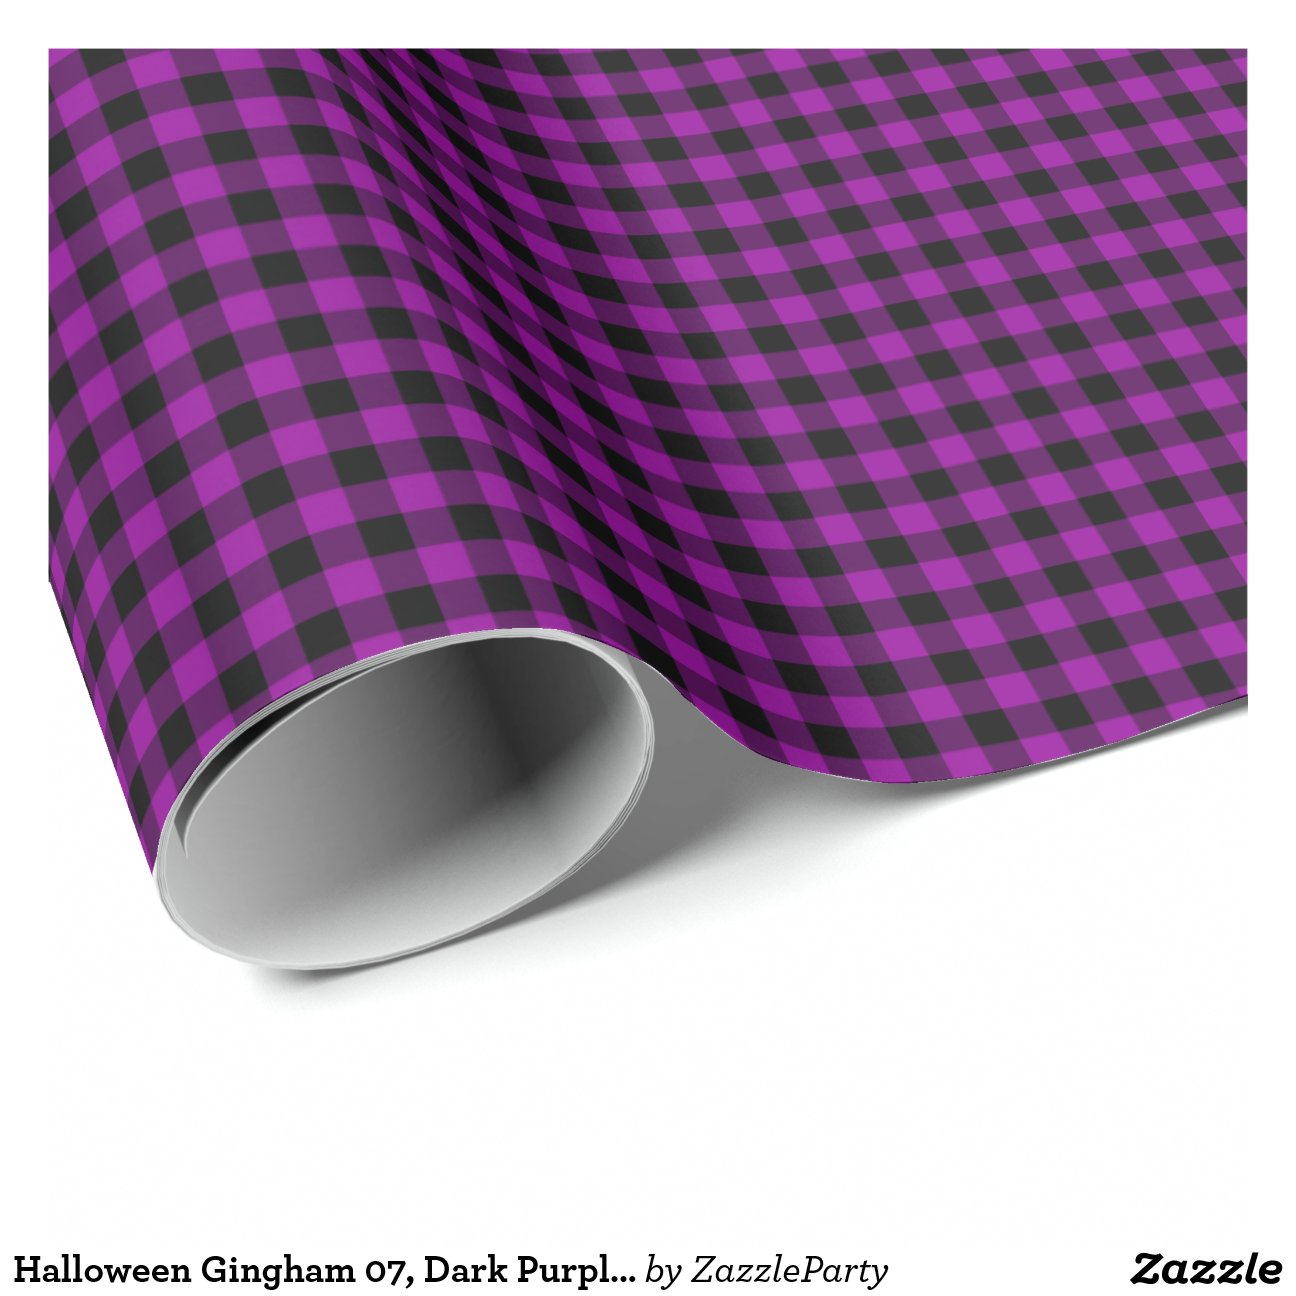 Halloween Gingham 07 Dark Wrap Paper Wrapping Zazzle